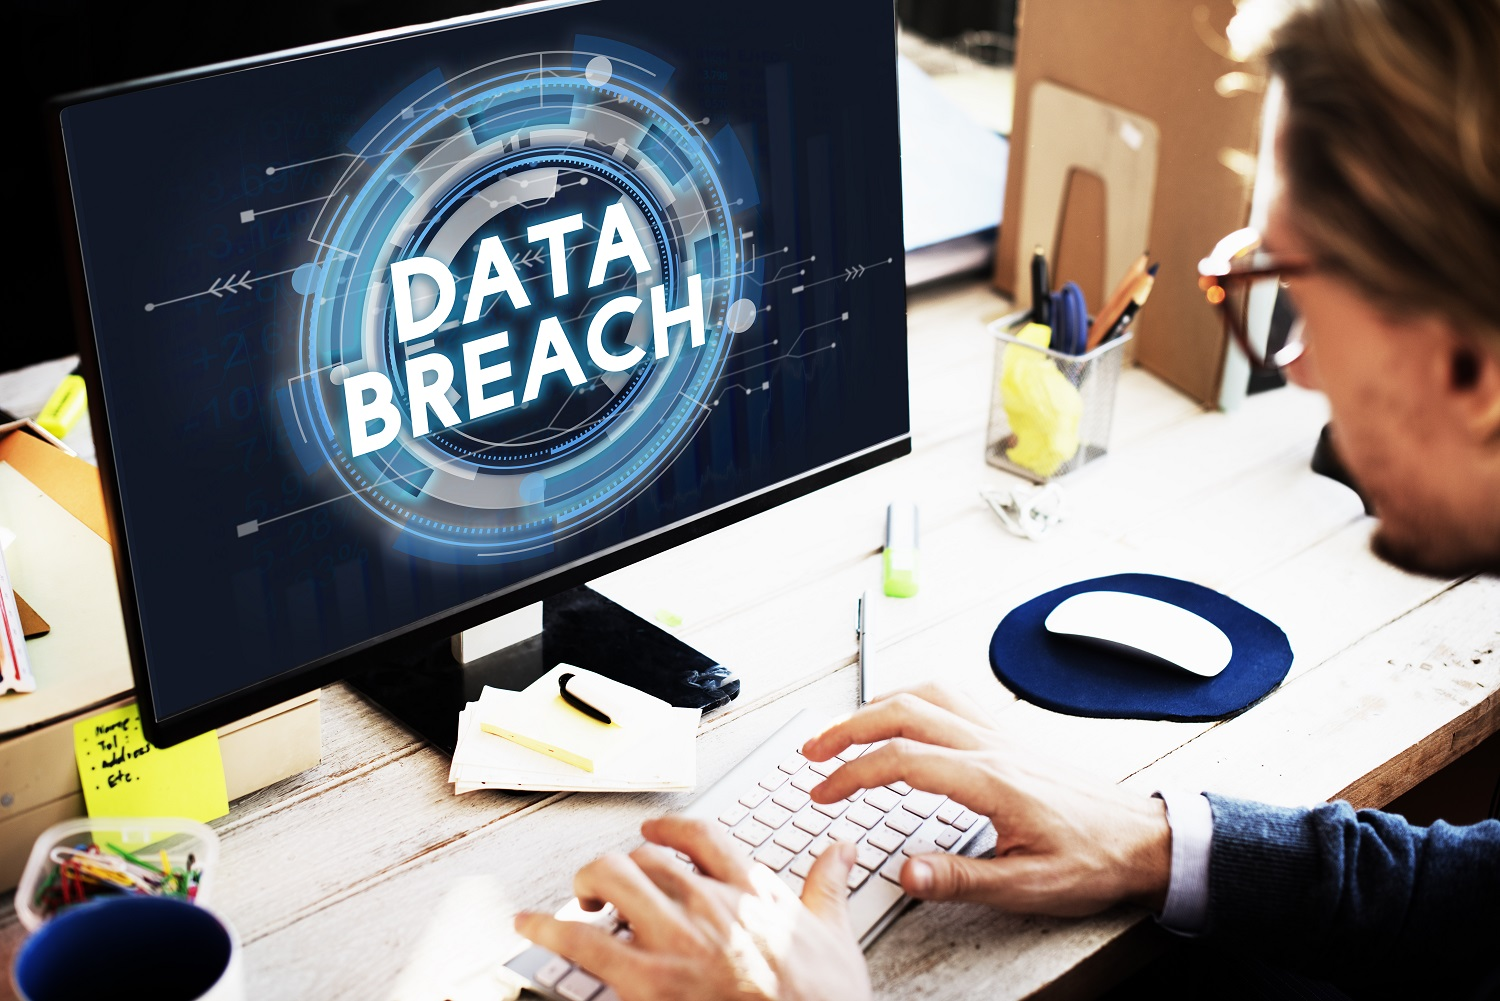 Don't Let Your Company Bleed – Our Data Breach Tip